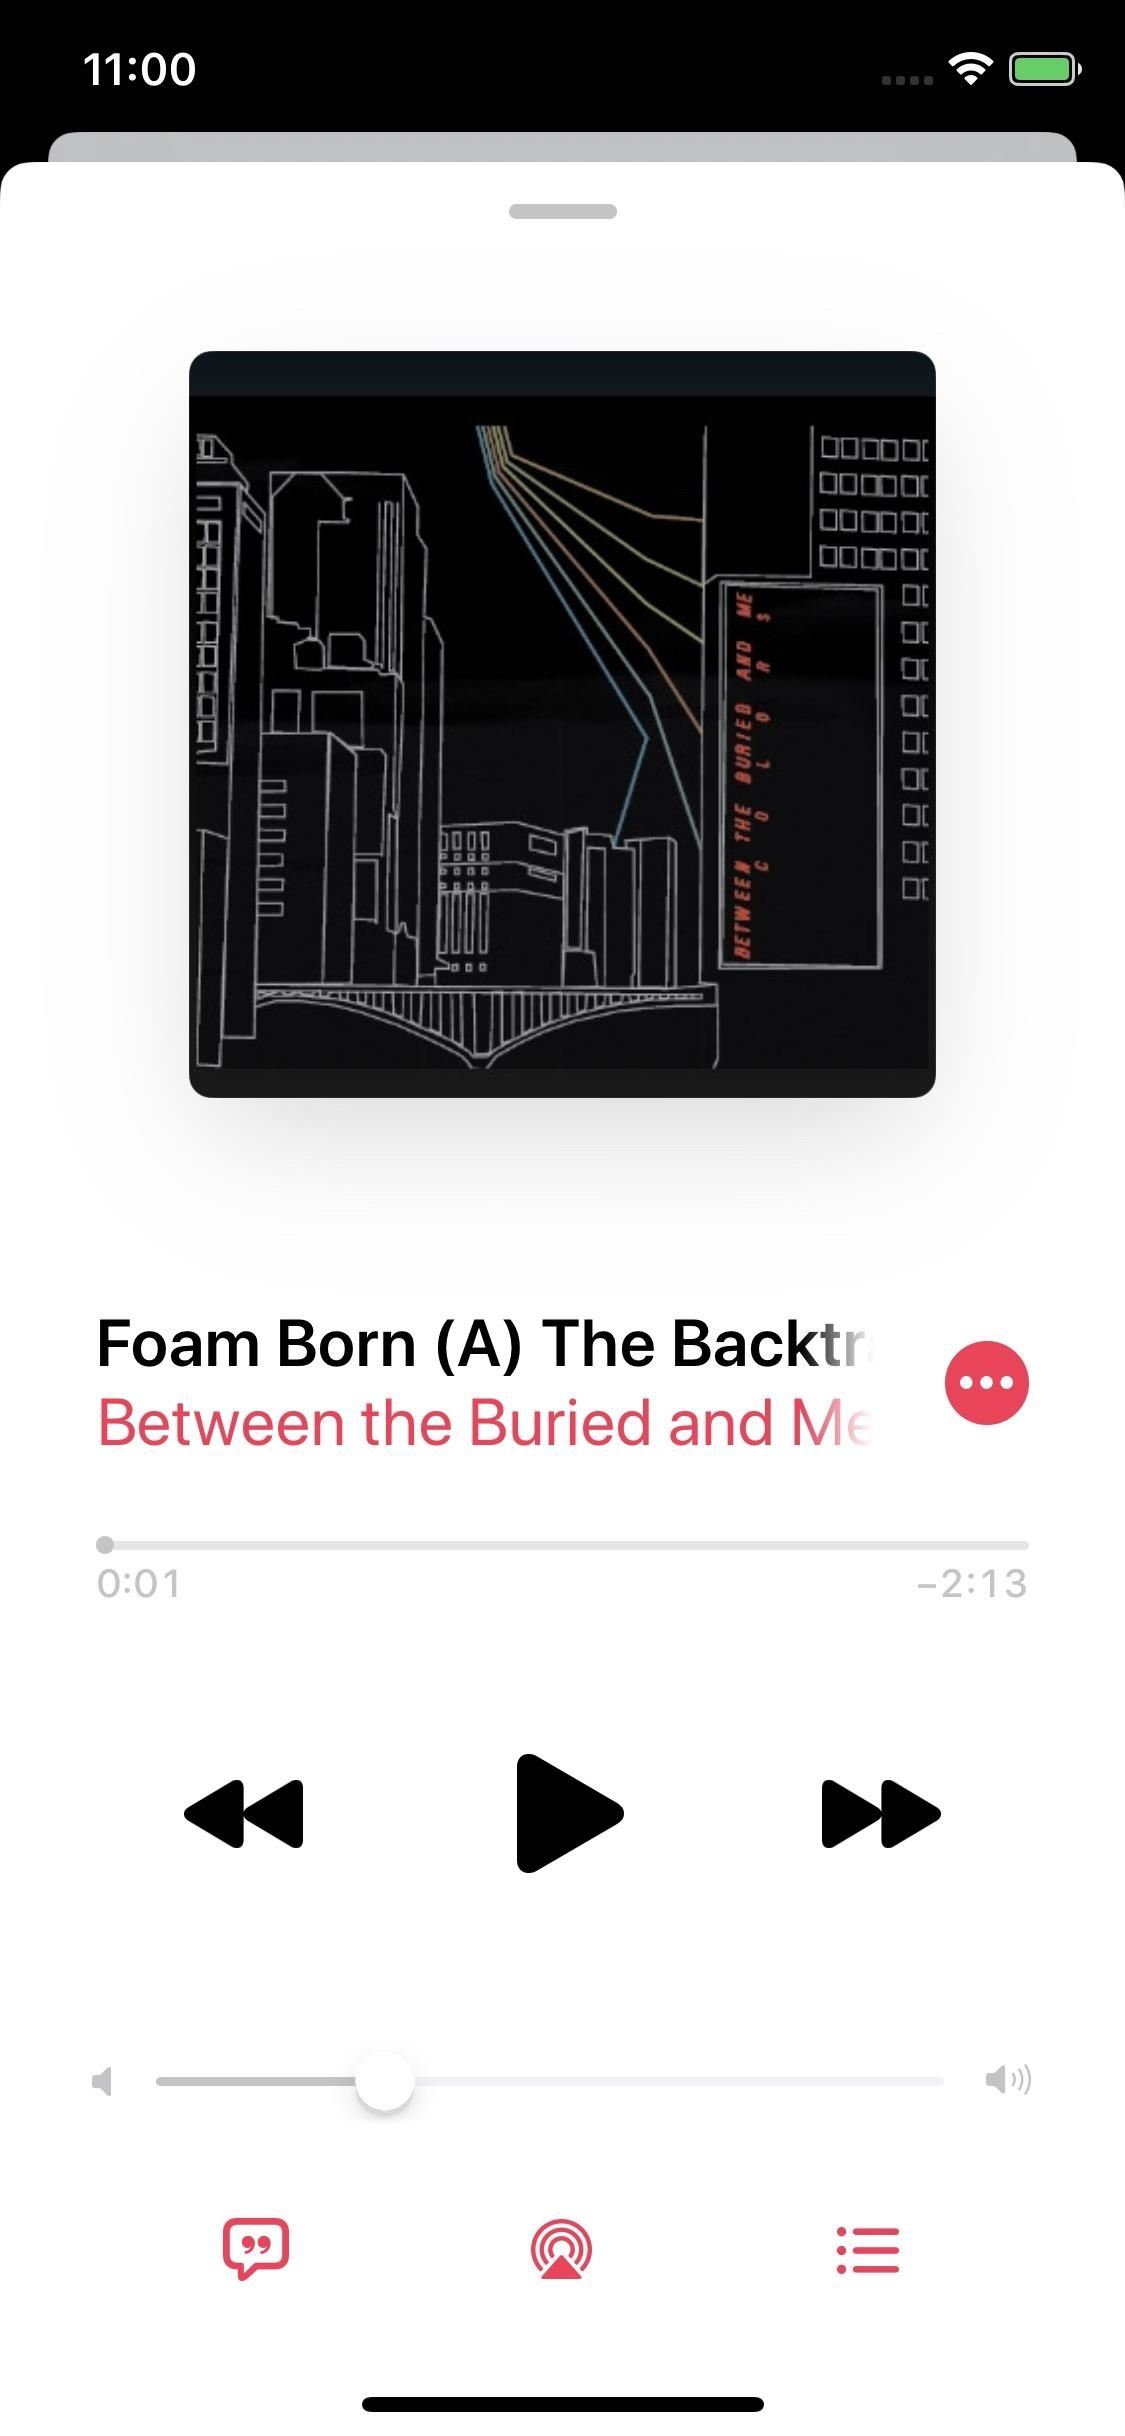 Displaying moving, time-lapse lyrics in Apple Music to which you can sing along Your favorite songs in iOS 13